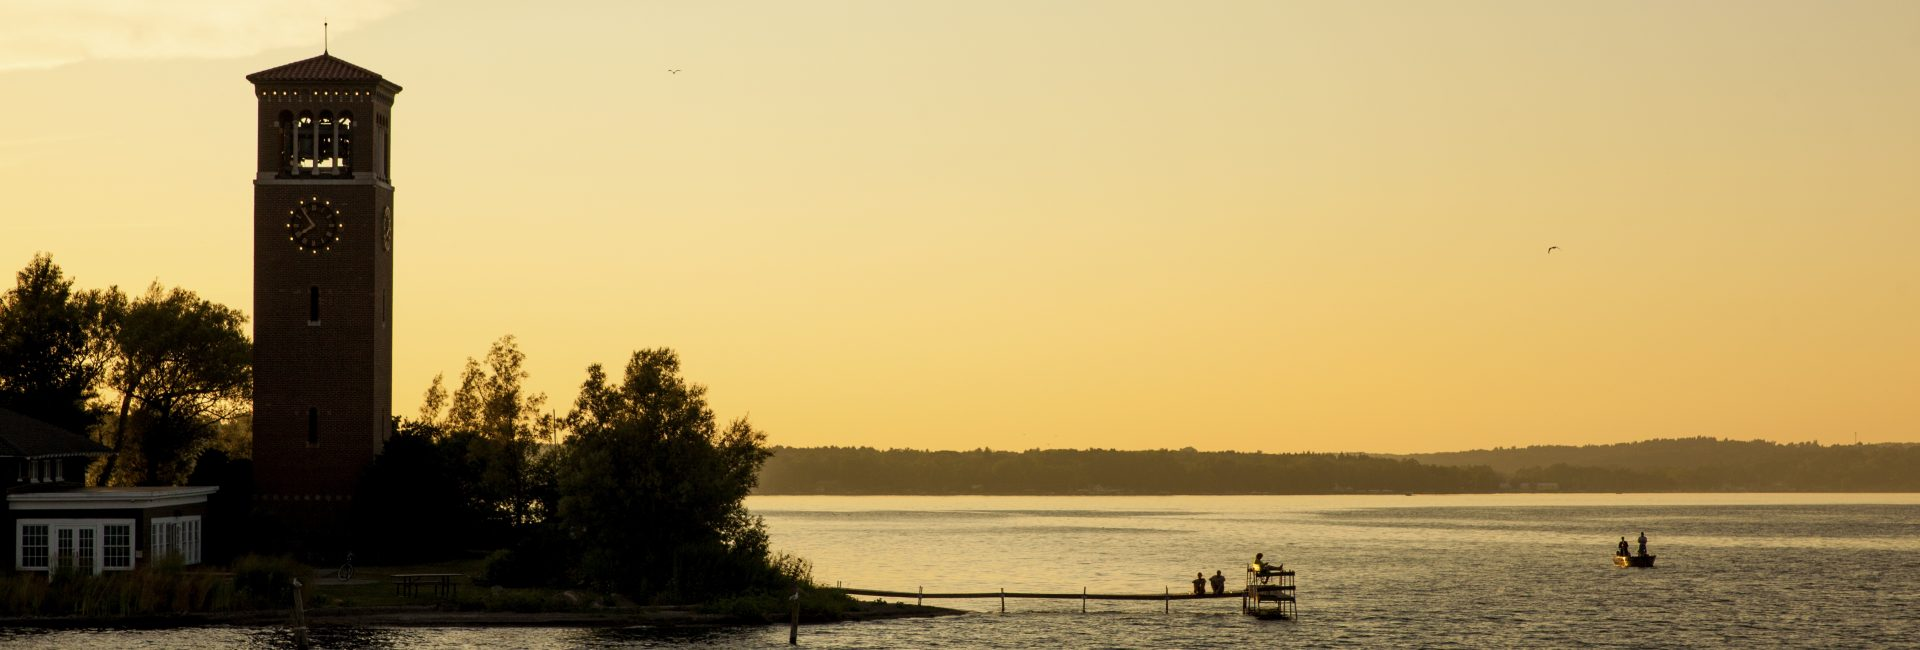 Chautauquans enjoy a sunset on the shore at 8 P.M. on Wednesday, August 10, near the Bell Tower. Photo by Carolyn Brown.